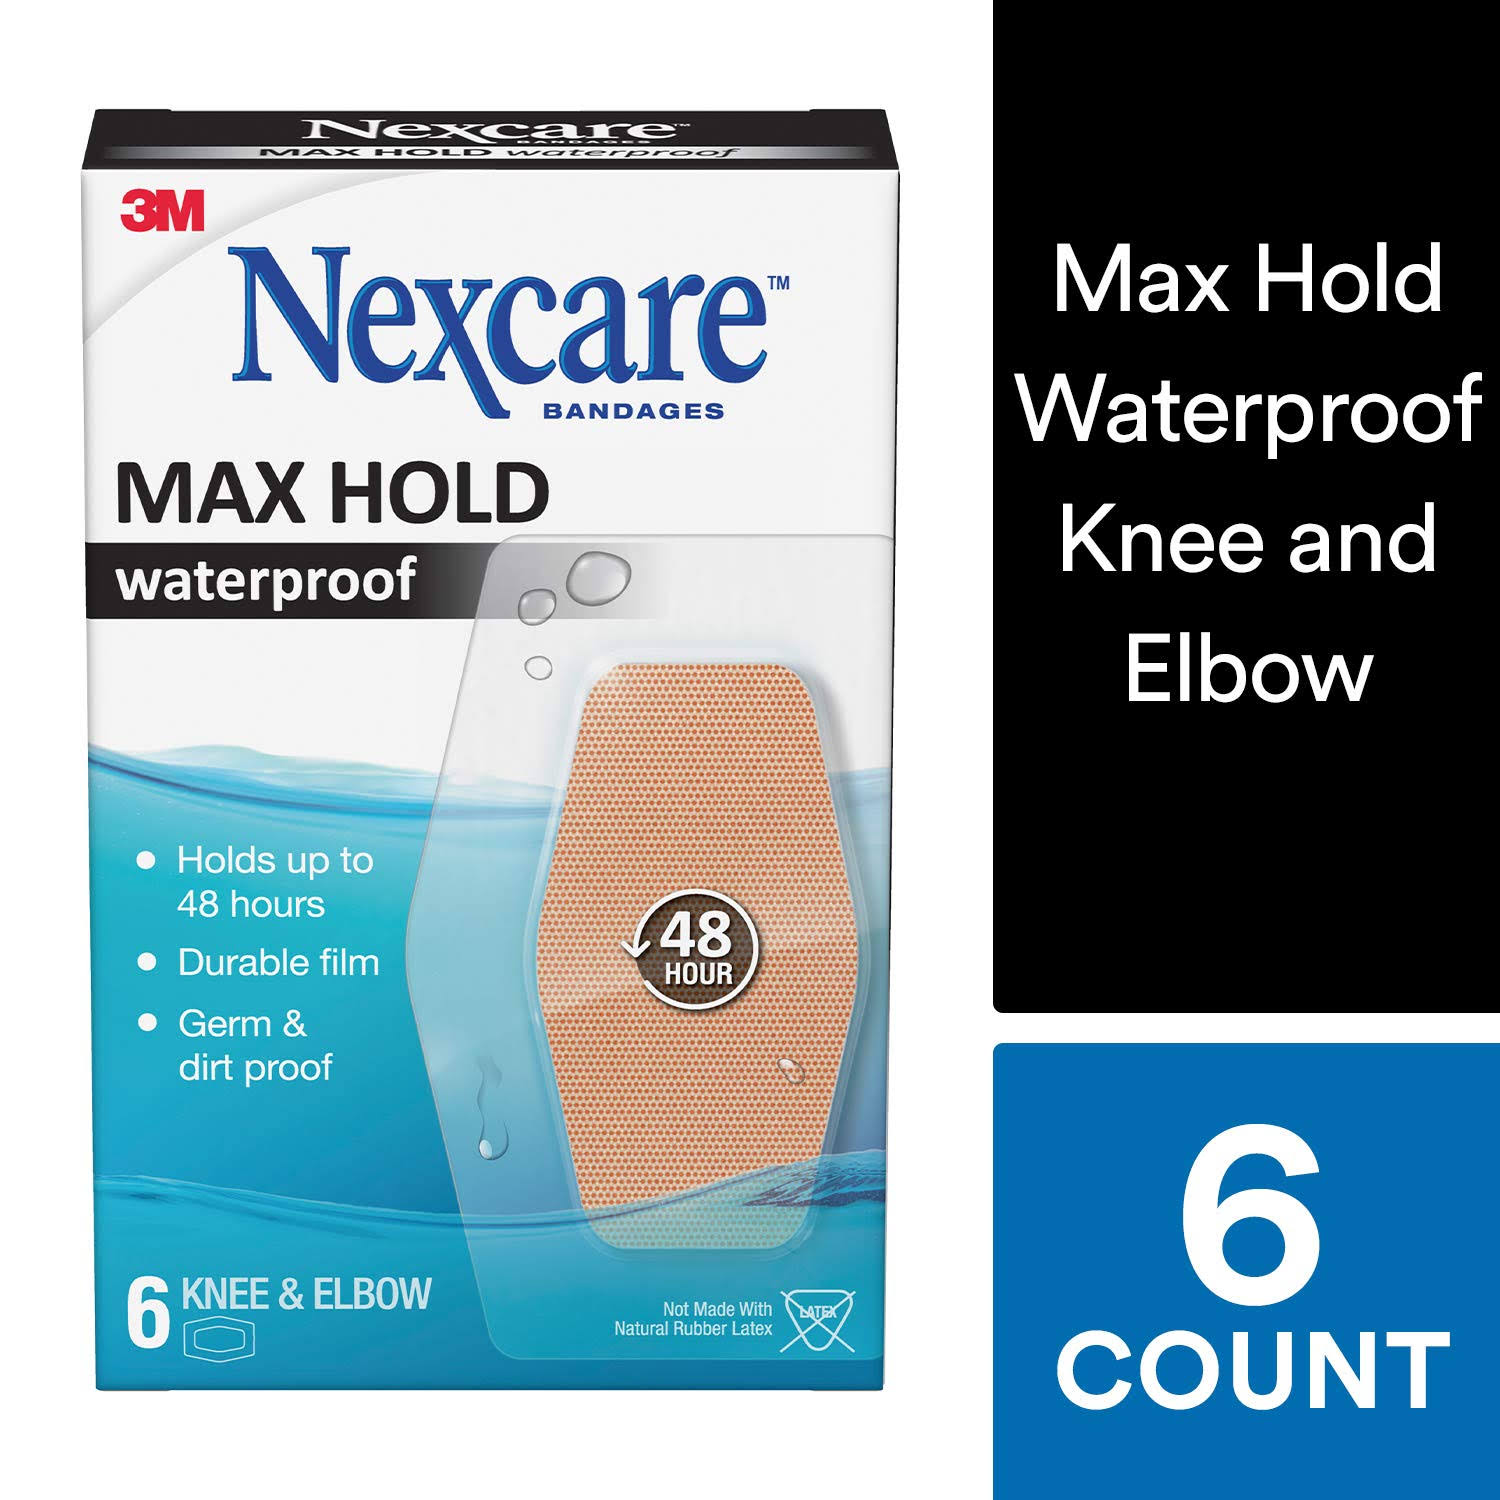 Nexcare Bandage Max Hold, Knee & Elbow 6 count